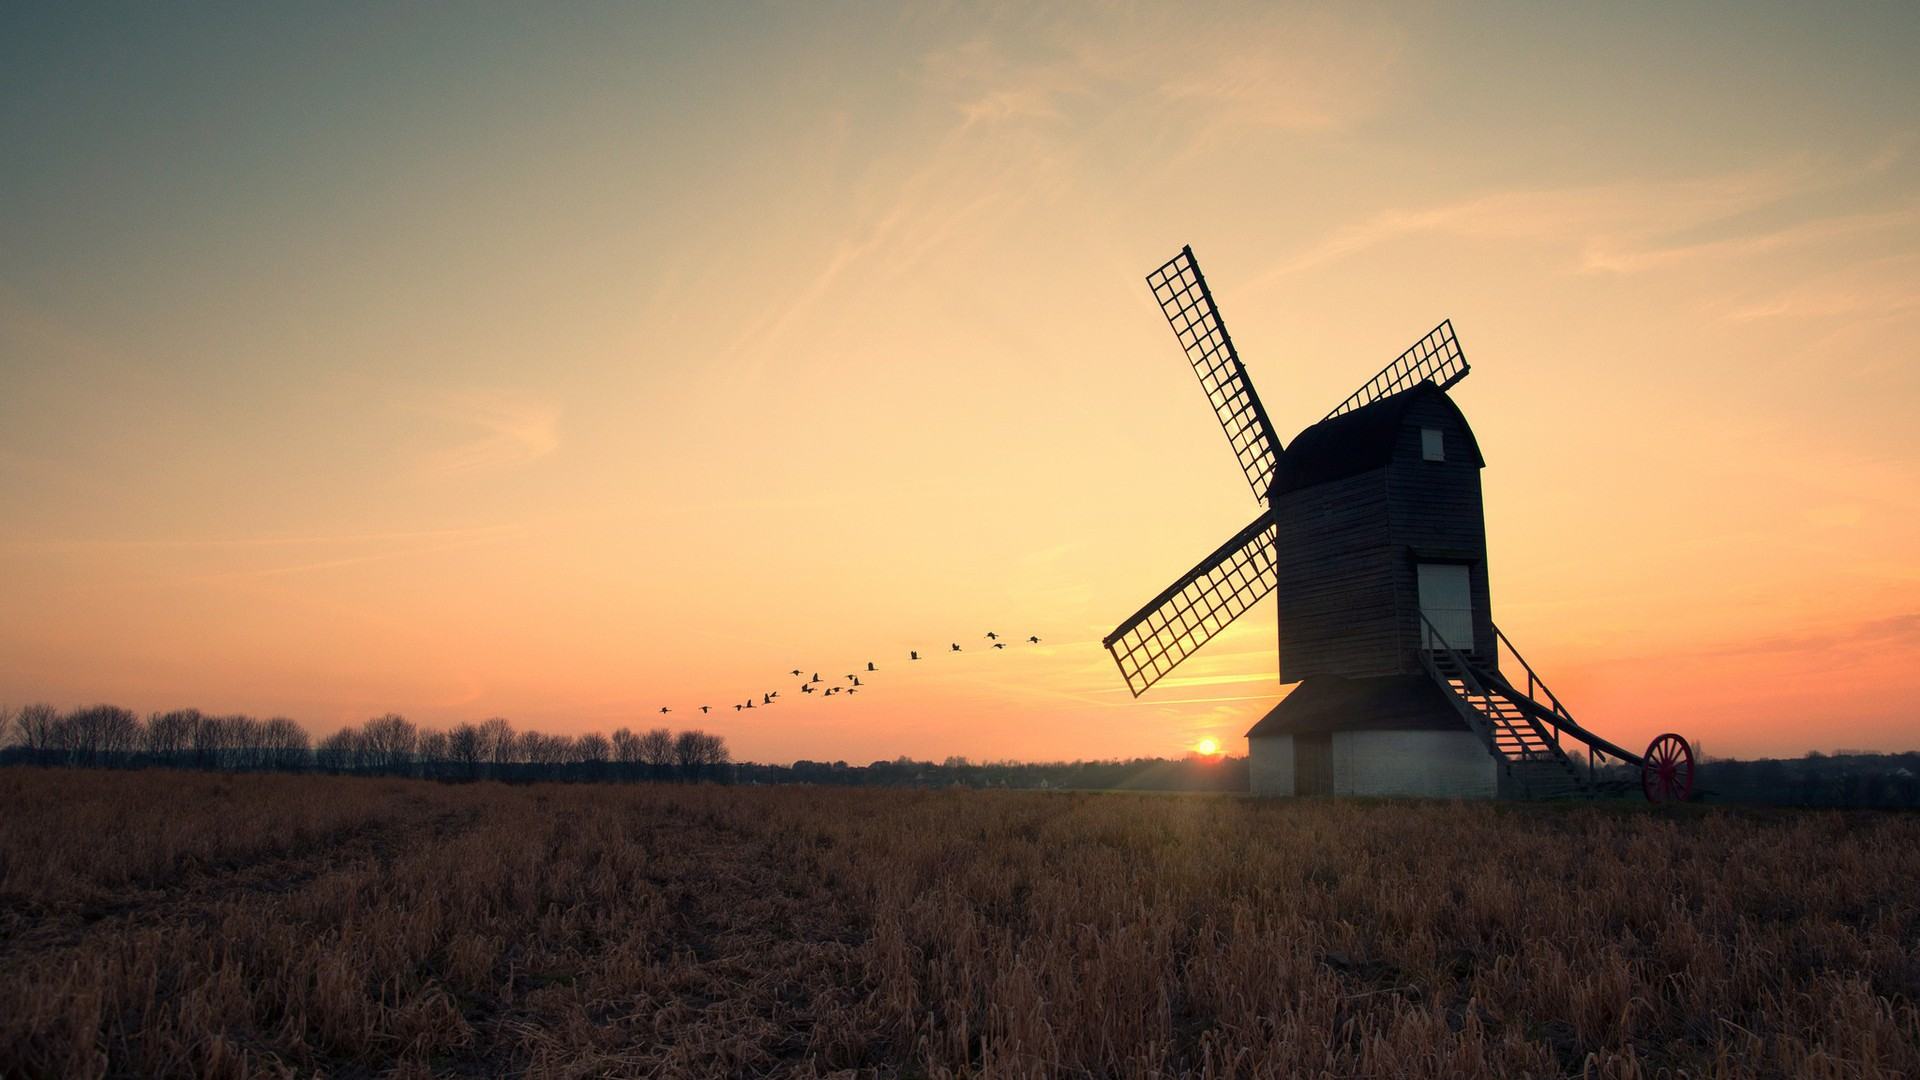 windmill sunset wallpaper 49679